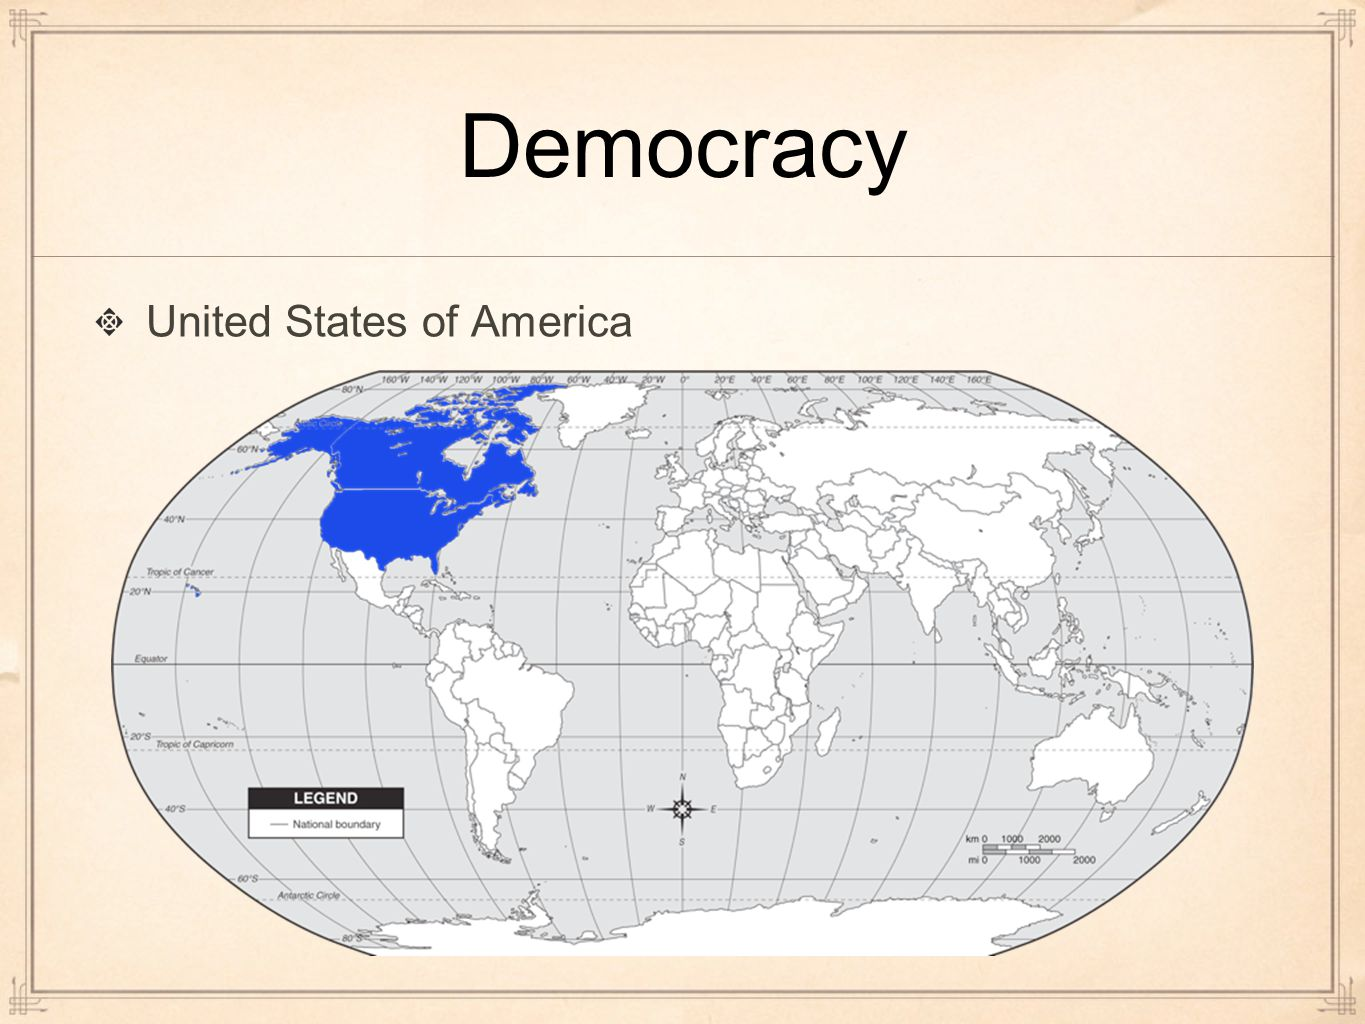 democratic united states america essay Democracy in america, is a firsthand sociopolitical observation of the united states written by french lawyer alexis de tocqueville in 1831 the author documents his travels through america and contrasts his experiences with established aristocratic systems in western europe this enduring classic .